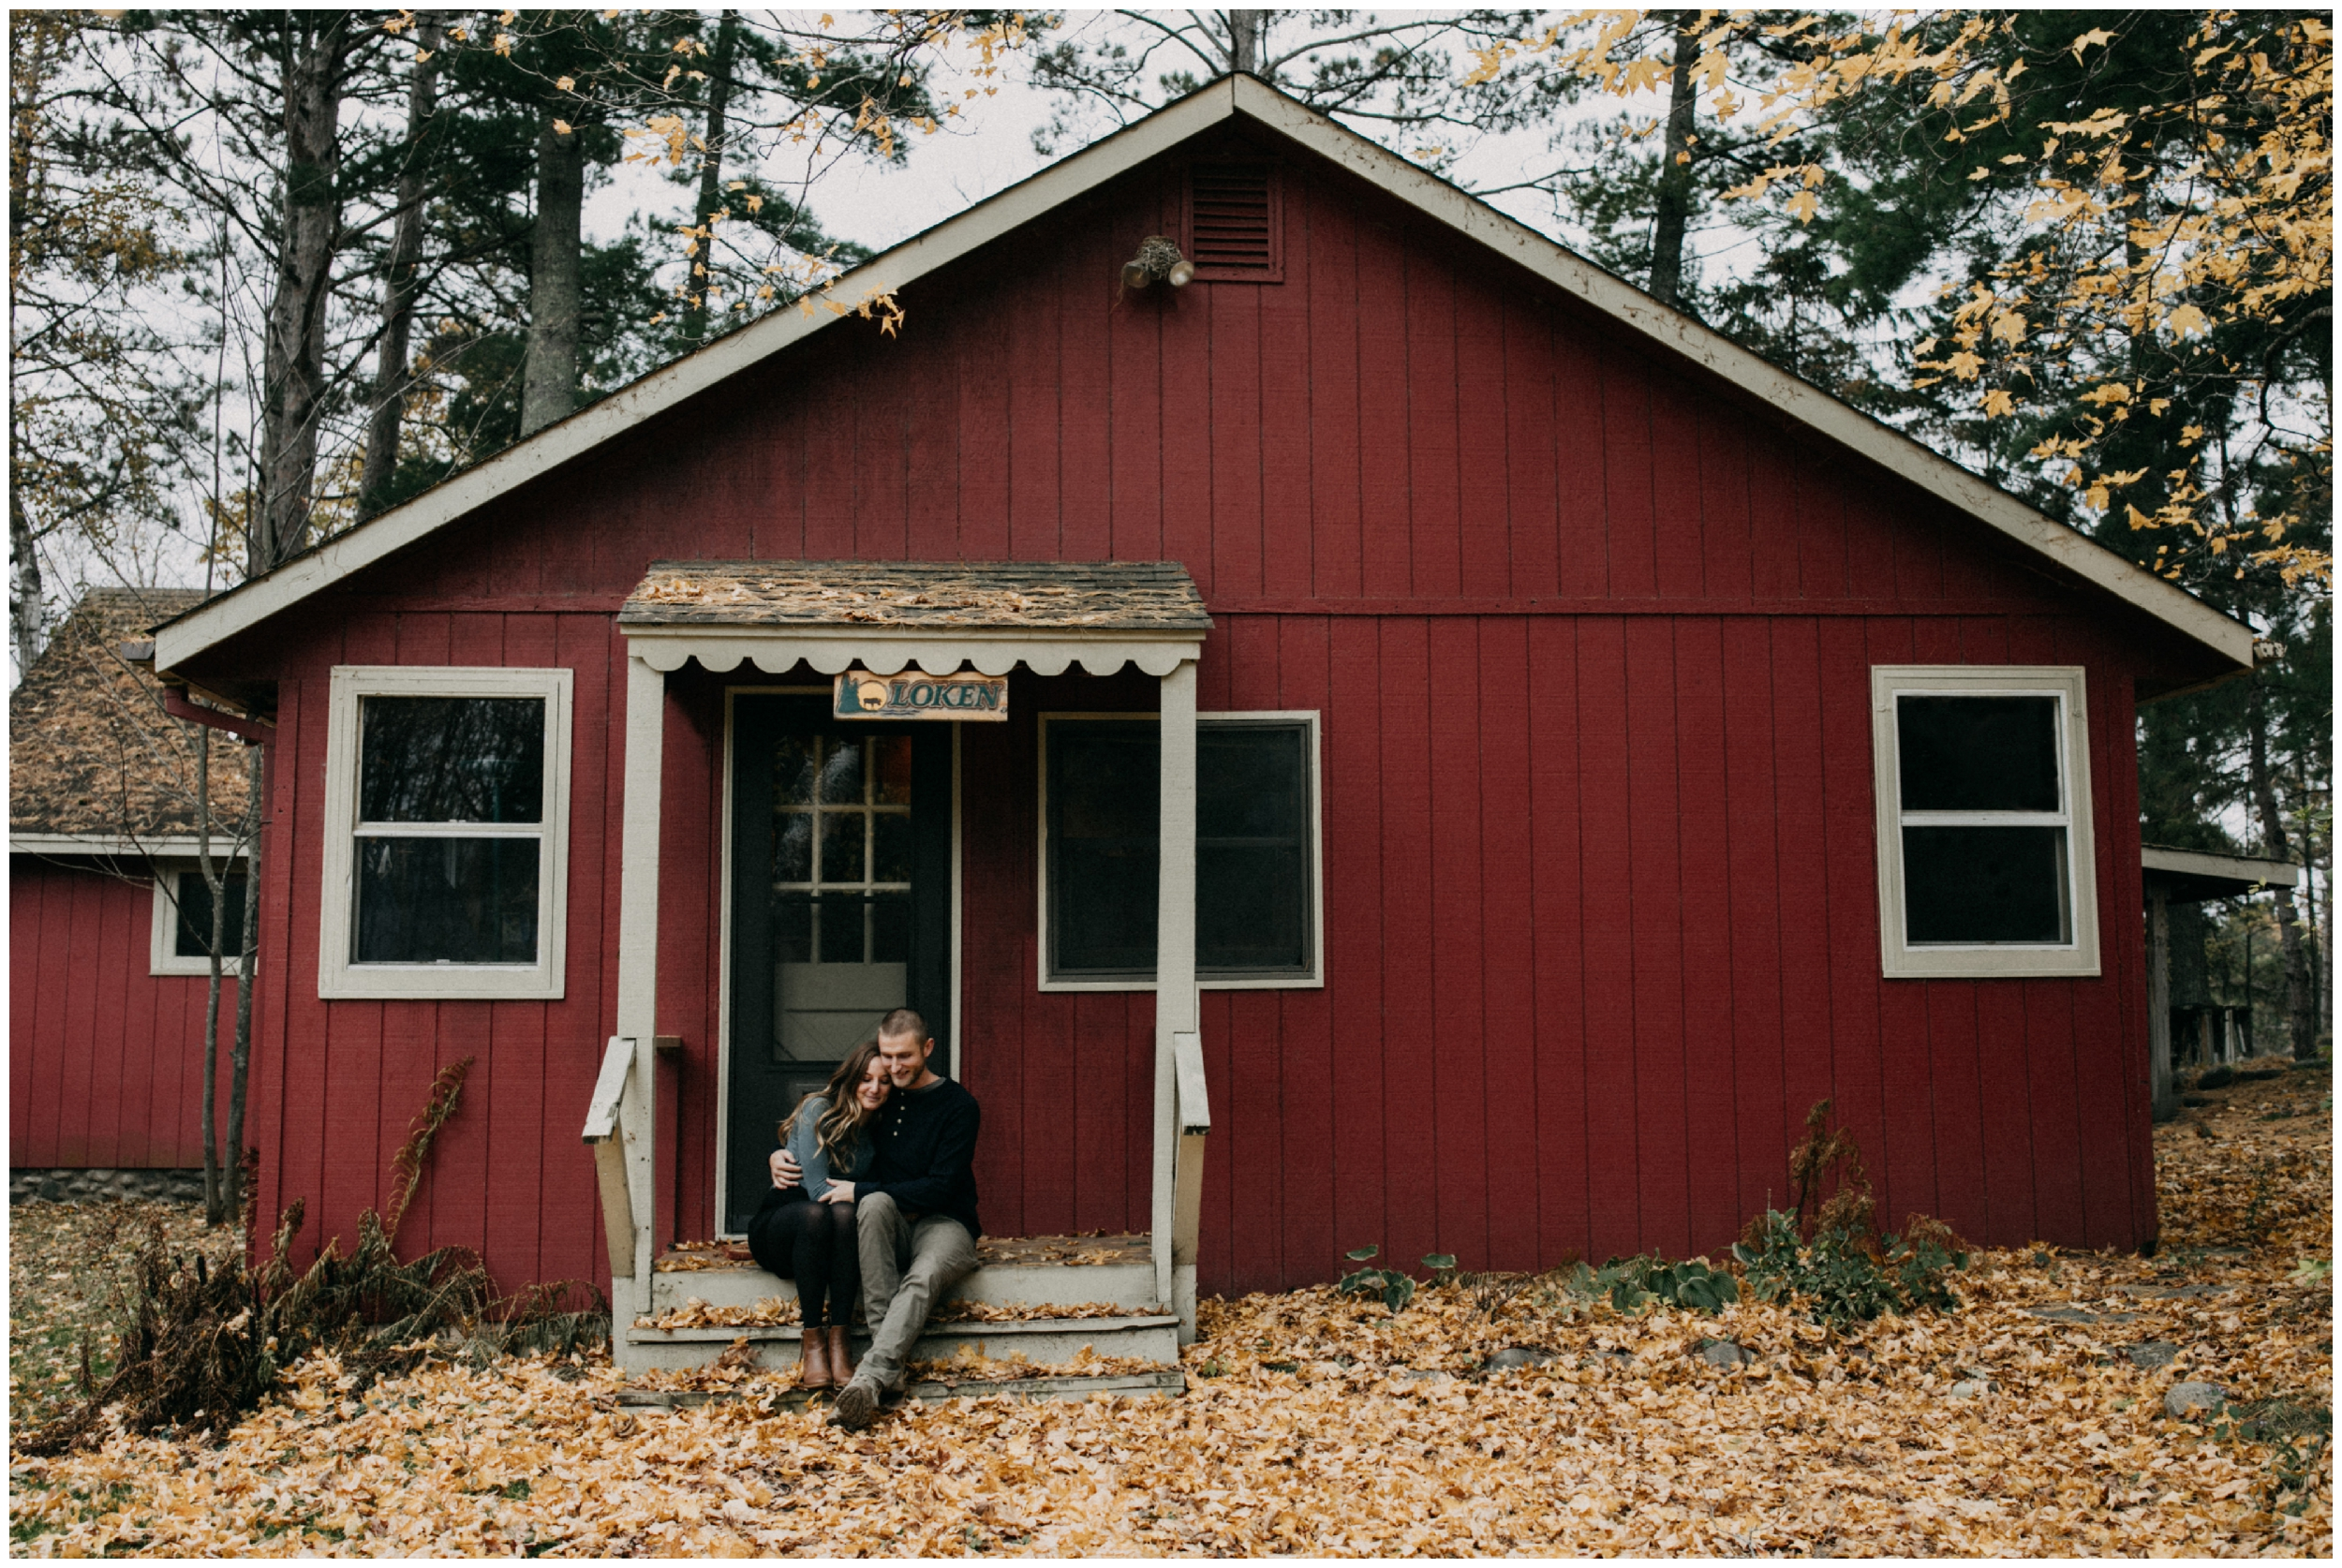 Engagement photography shoot at cute little red cabin on the lake in Hackensack, Minnesota